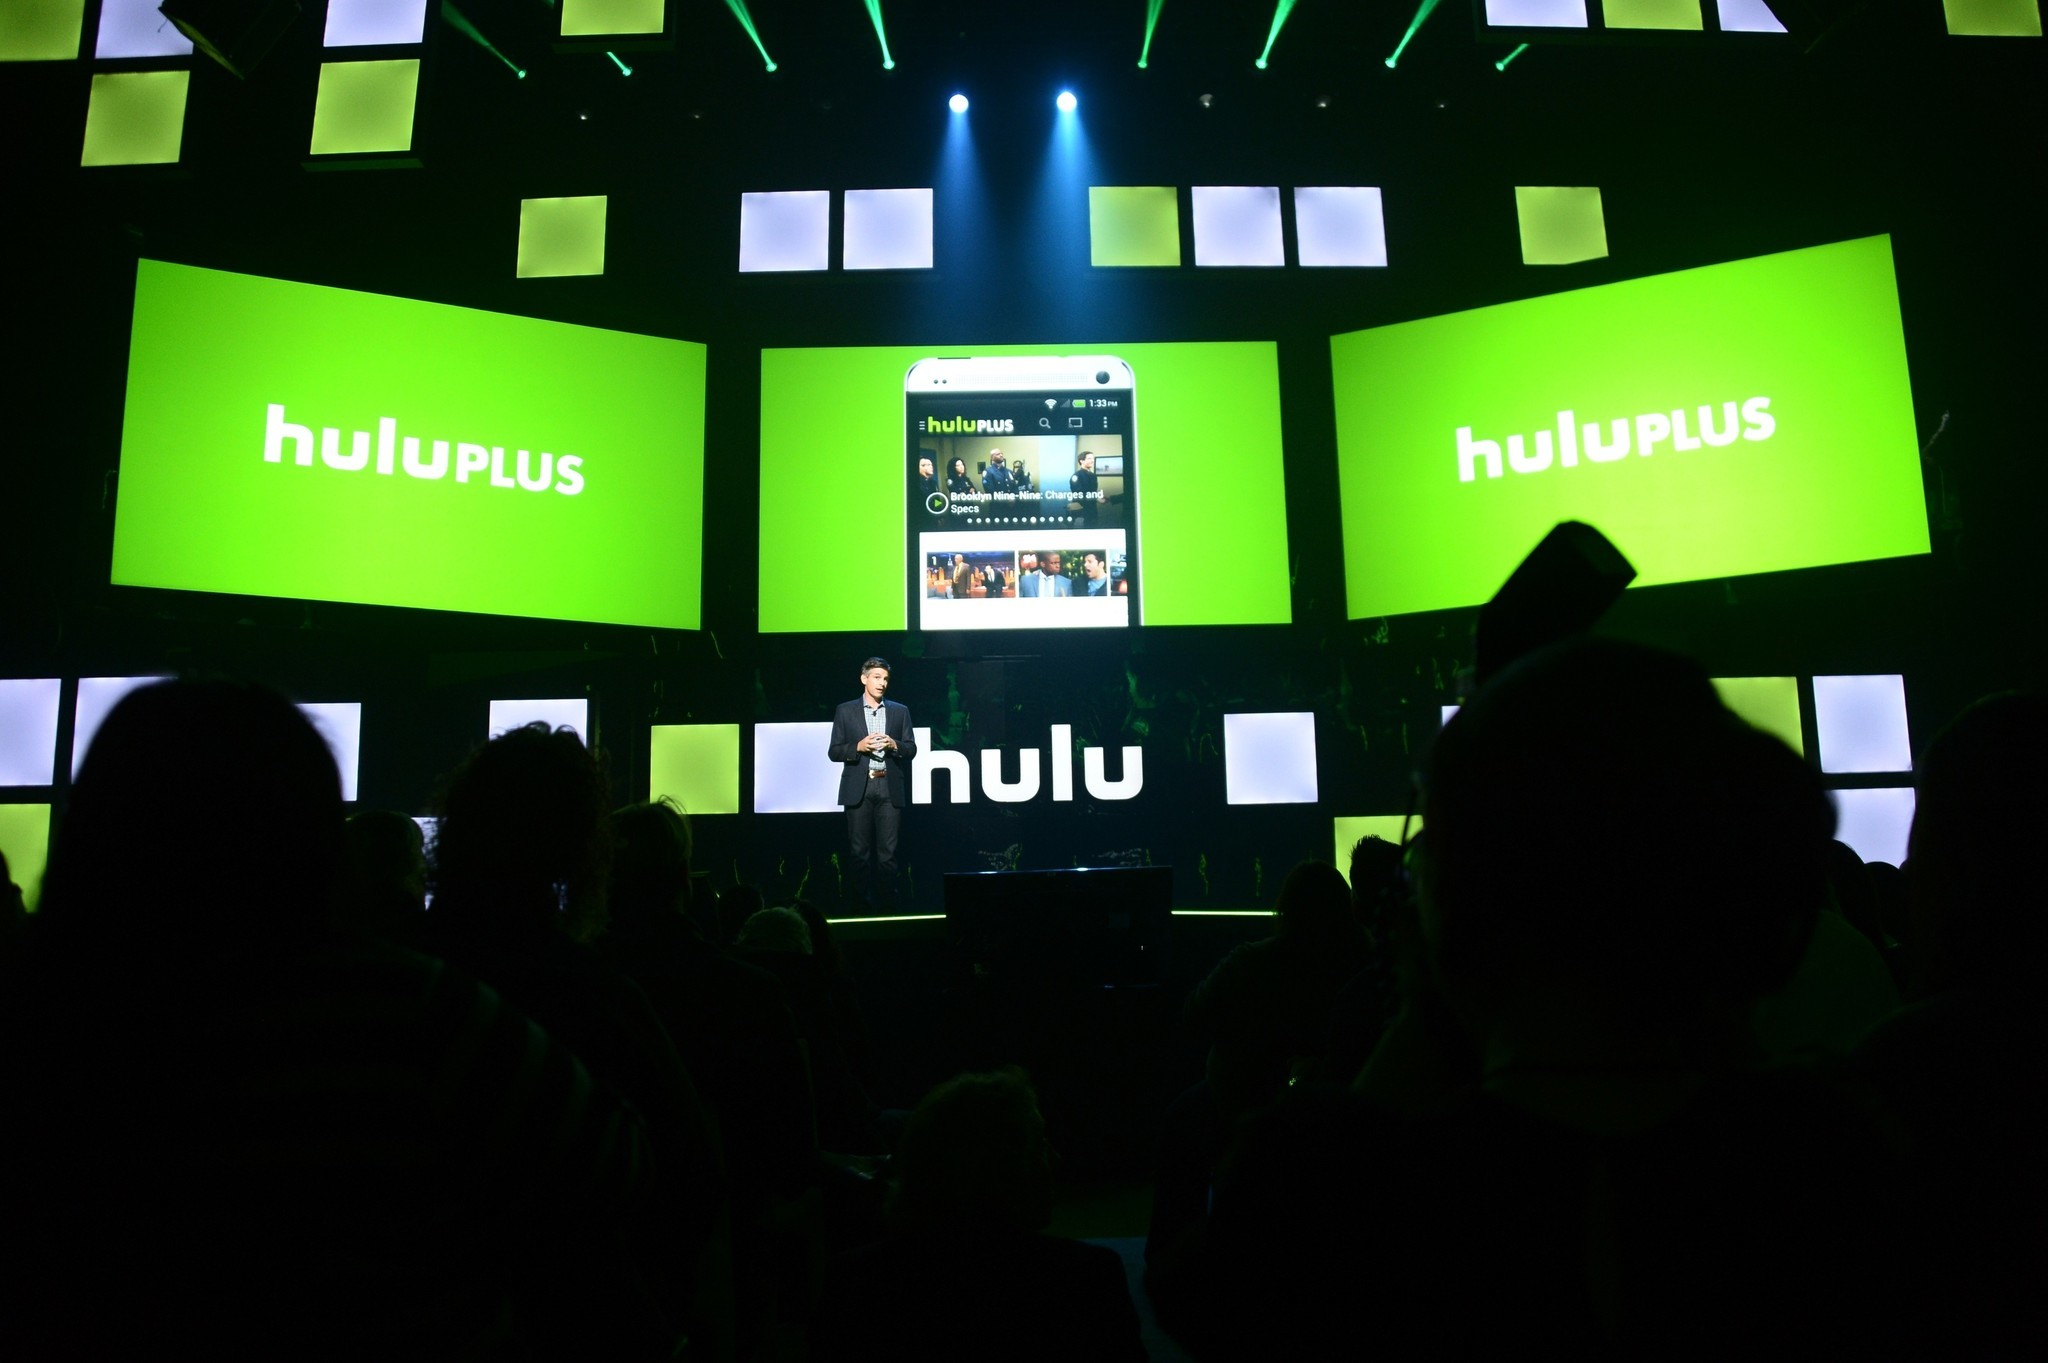 la-et-ct-hulu-subscribers-can-soon-access-showtime-content-at-an-additional-cost-20150623